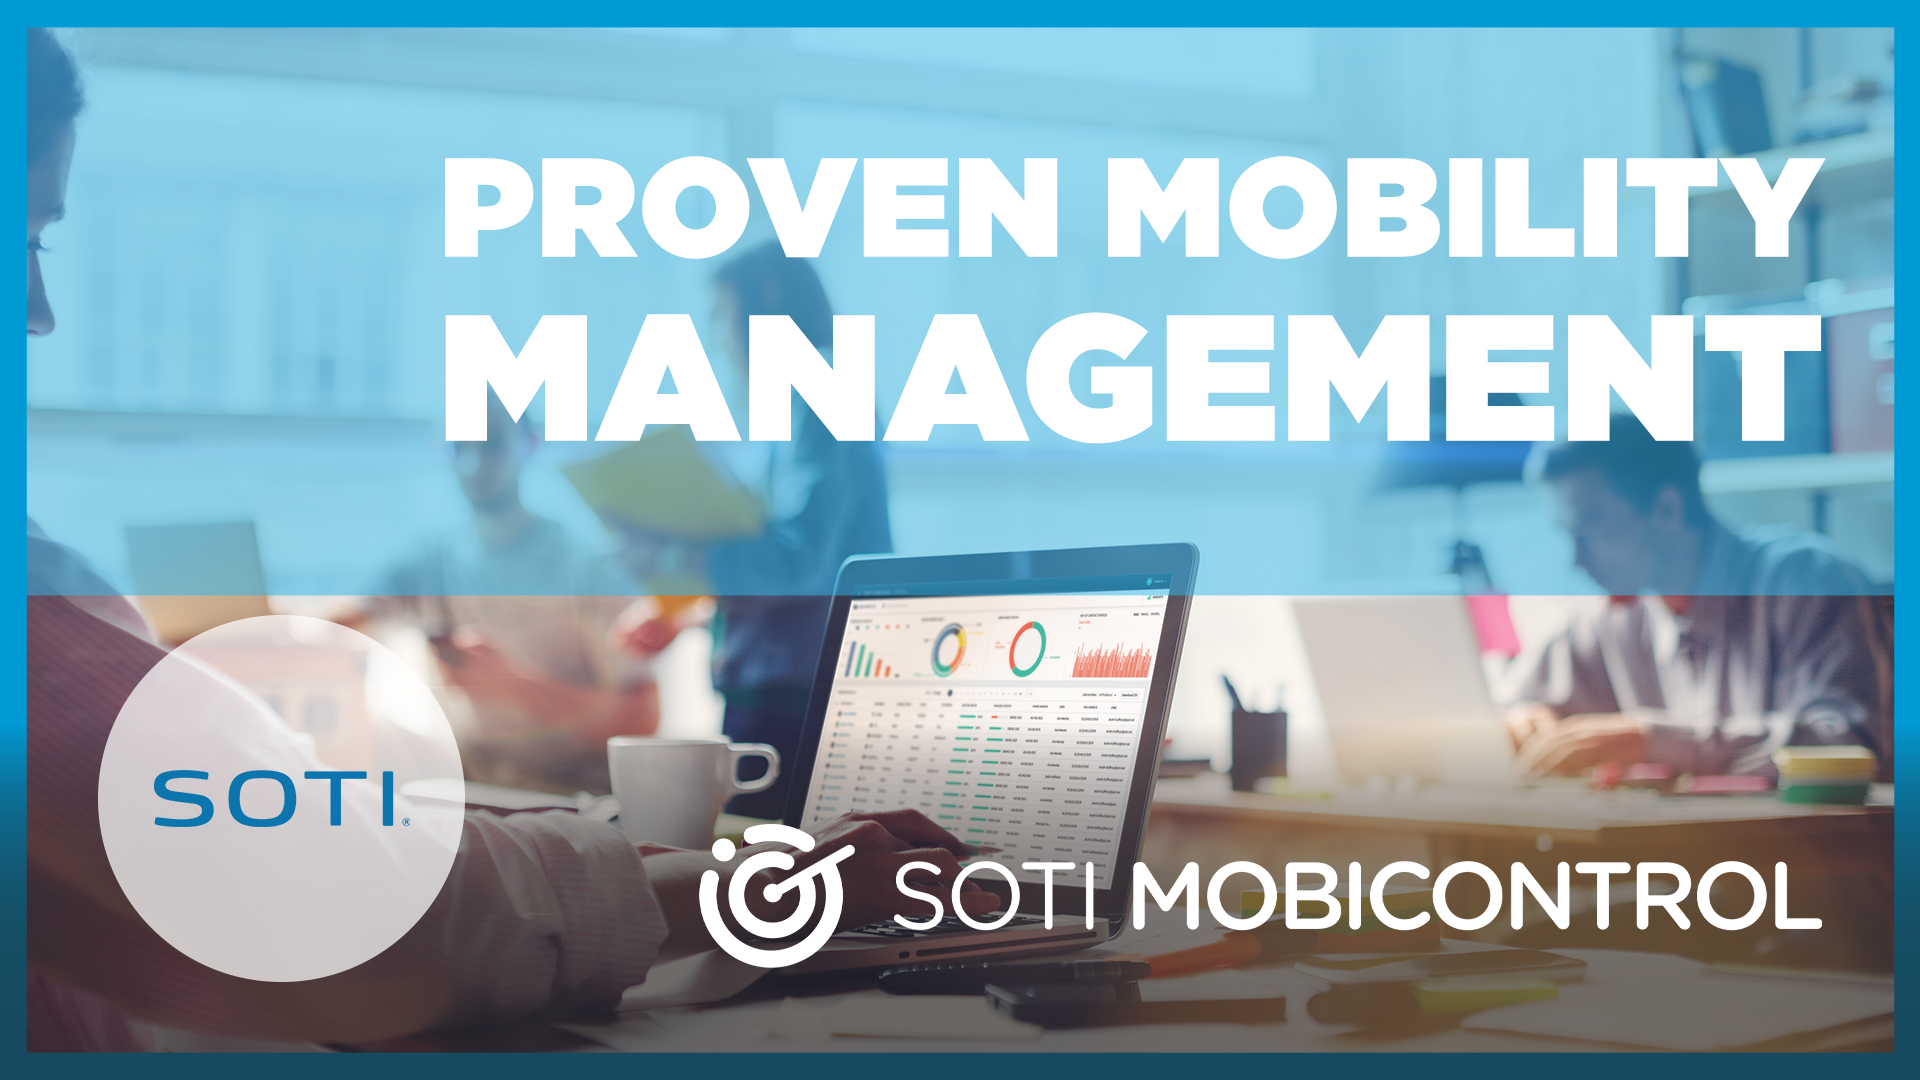 Video of SOTI MobiControl: Proven Mobility Management